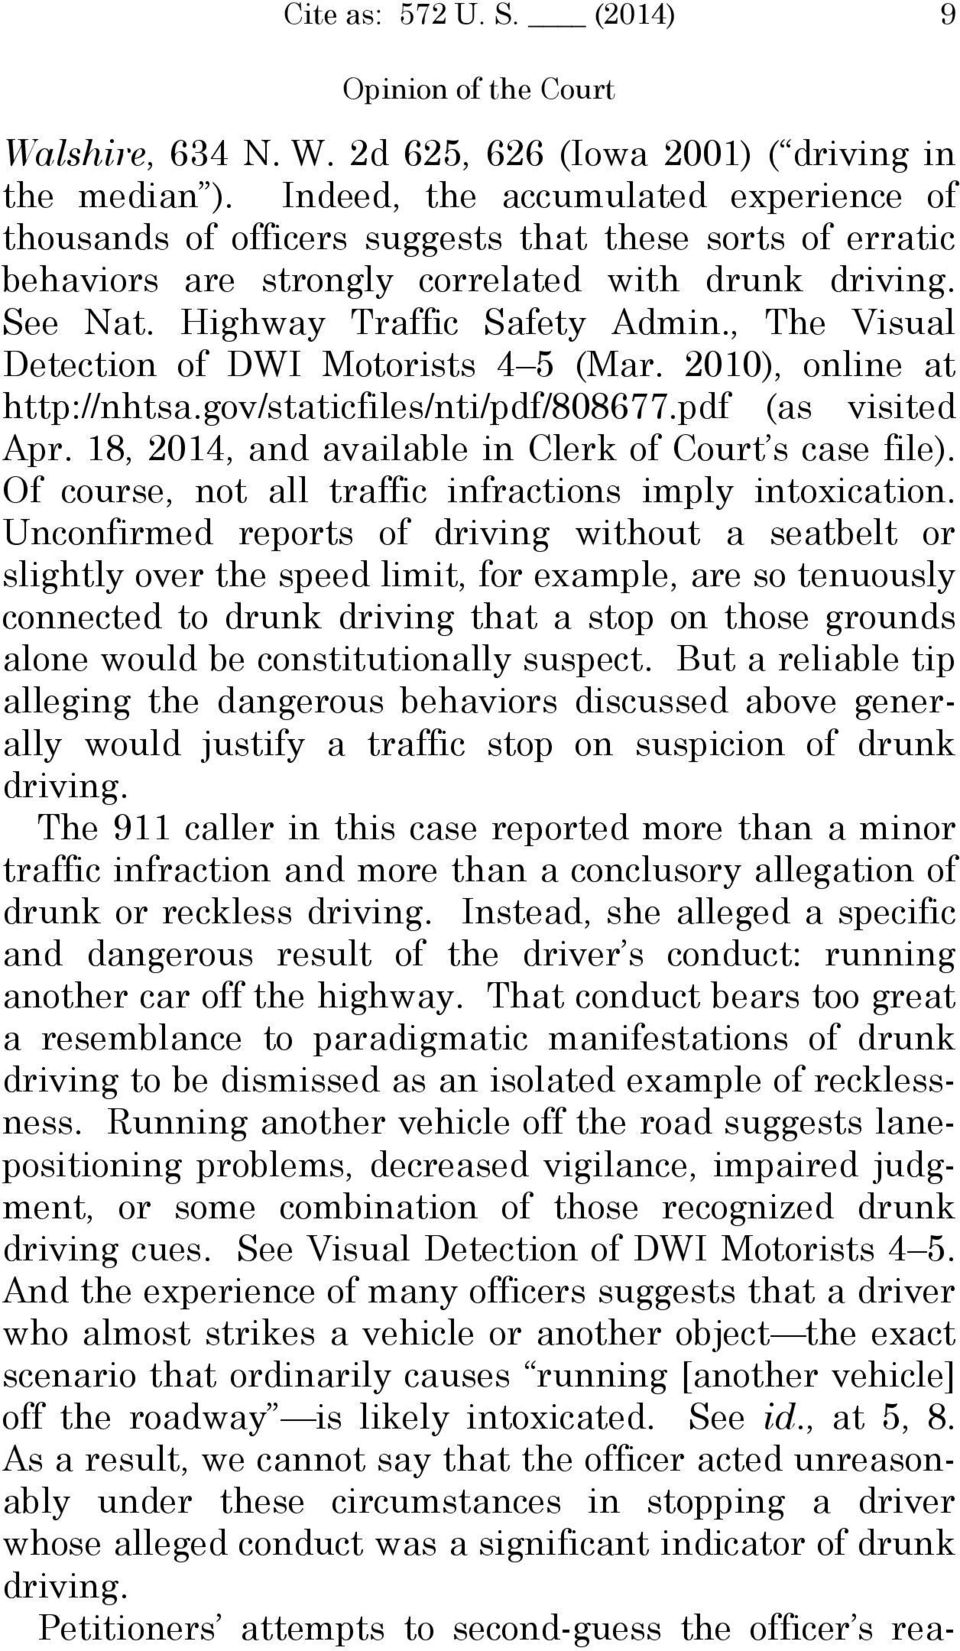 , The Visual Detection of DWI Motorists 4 5 (Mar. 2010), online at http://nhtsa.gov/staticfiles/nti/pdf/808677.pdf (as visited Apr. 18, 2014, and available in Clerk of Court s case file).